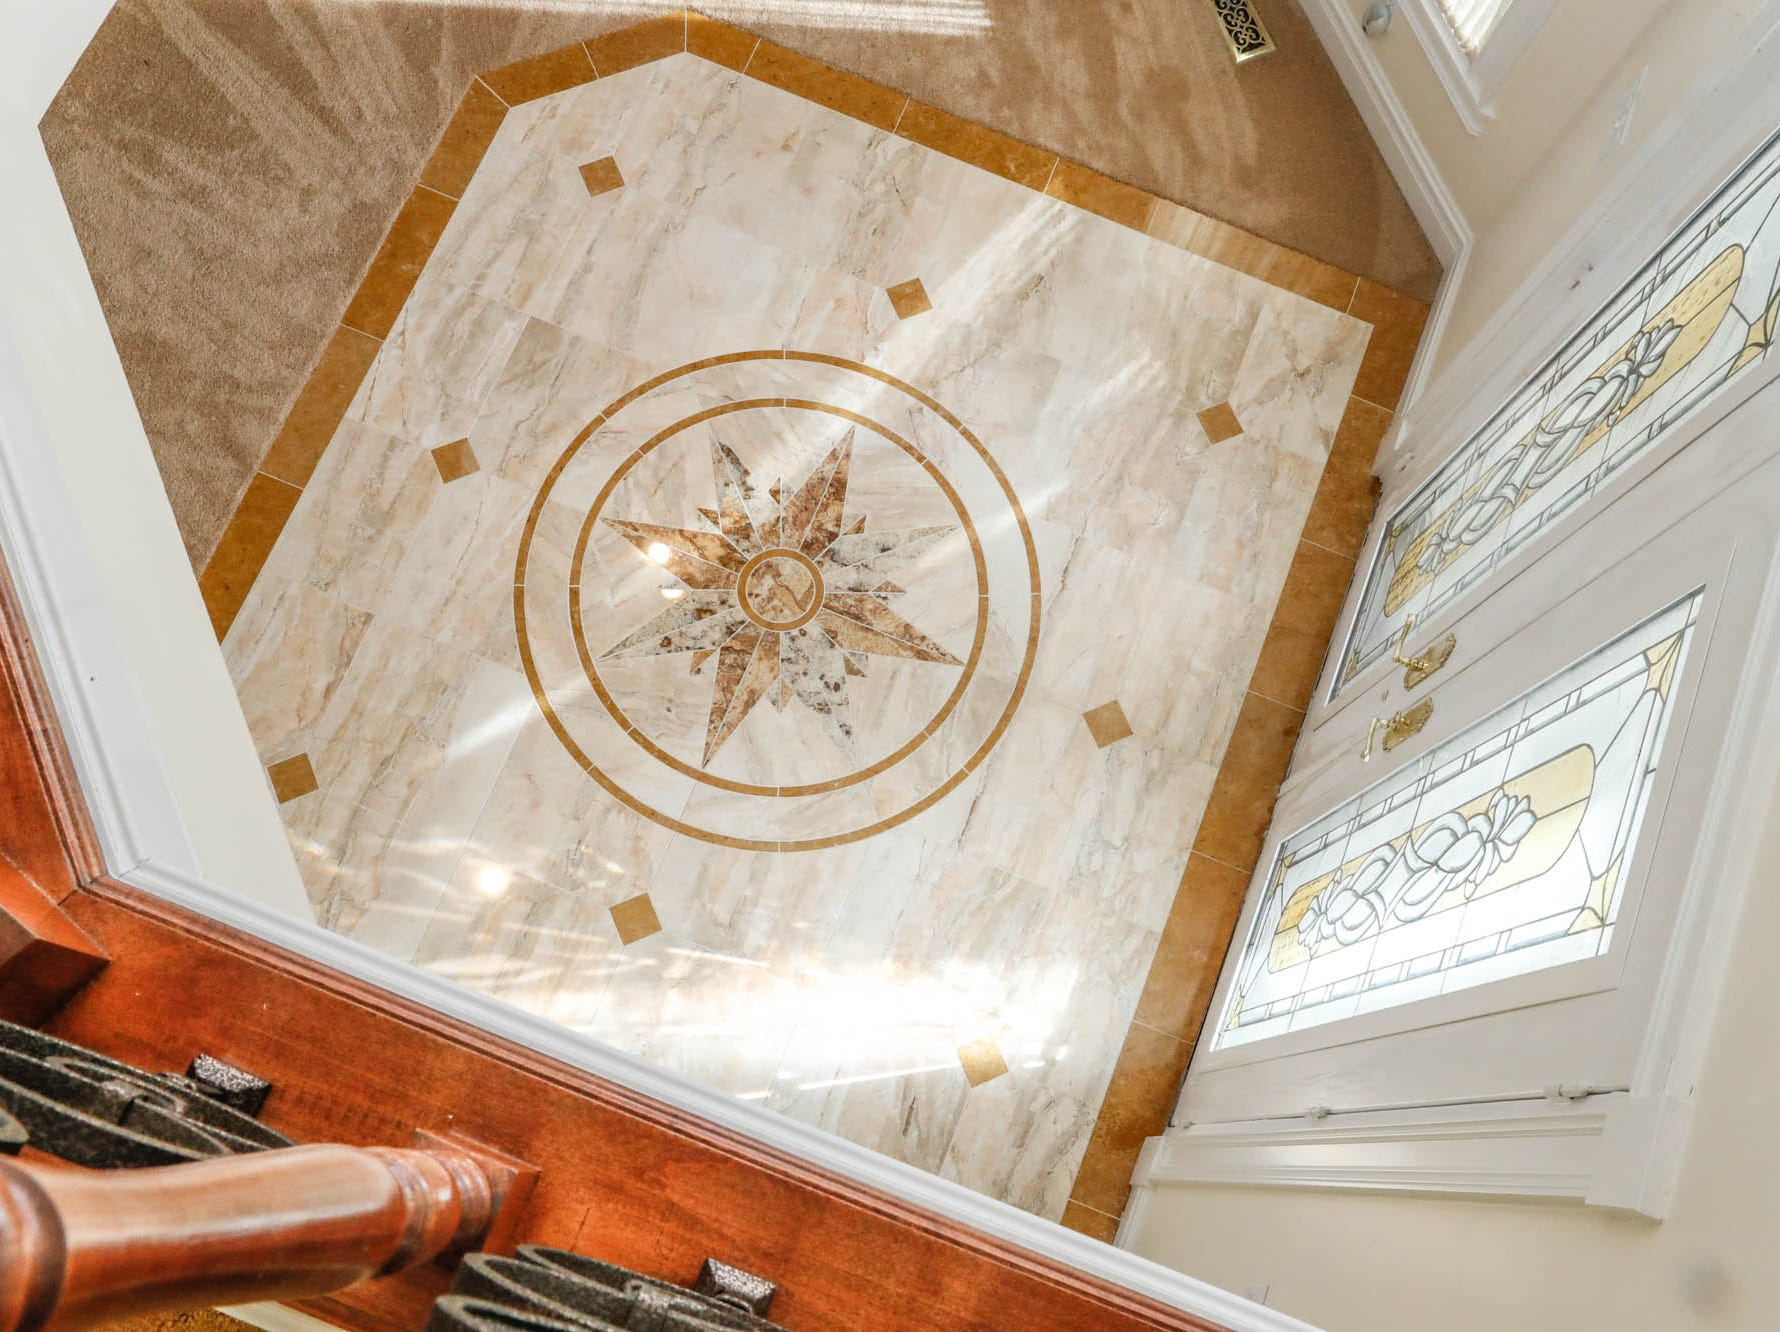 A Greenwood home up for sale at 1216 Stone Ridge Court, Greenwood, Ind., features an intricate entrance way on Wednesday, Jan. 30, 2019. The home features 8,234 square feet, four bedrooms, two master suites, a 10 car garage, and an exercise room.